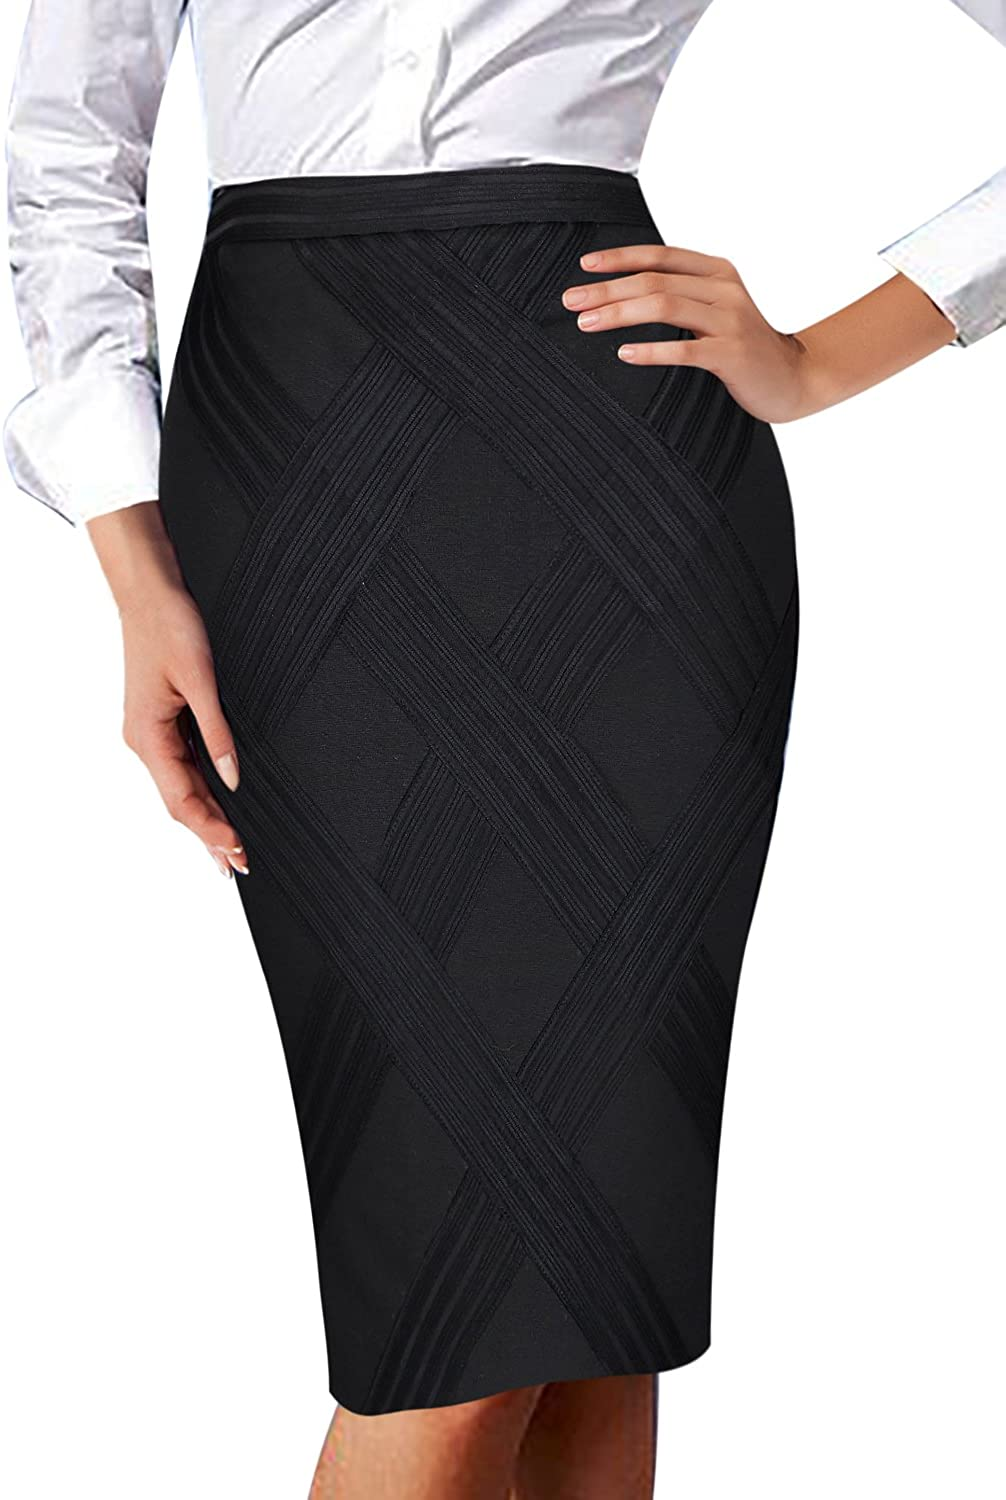 VFSHOW Womens Elegant Patchwork High Waist Wear to Work Party Pencil Skirt